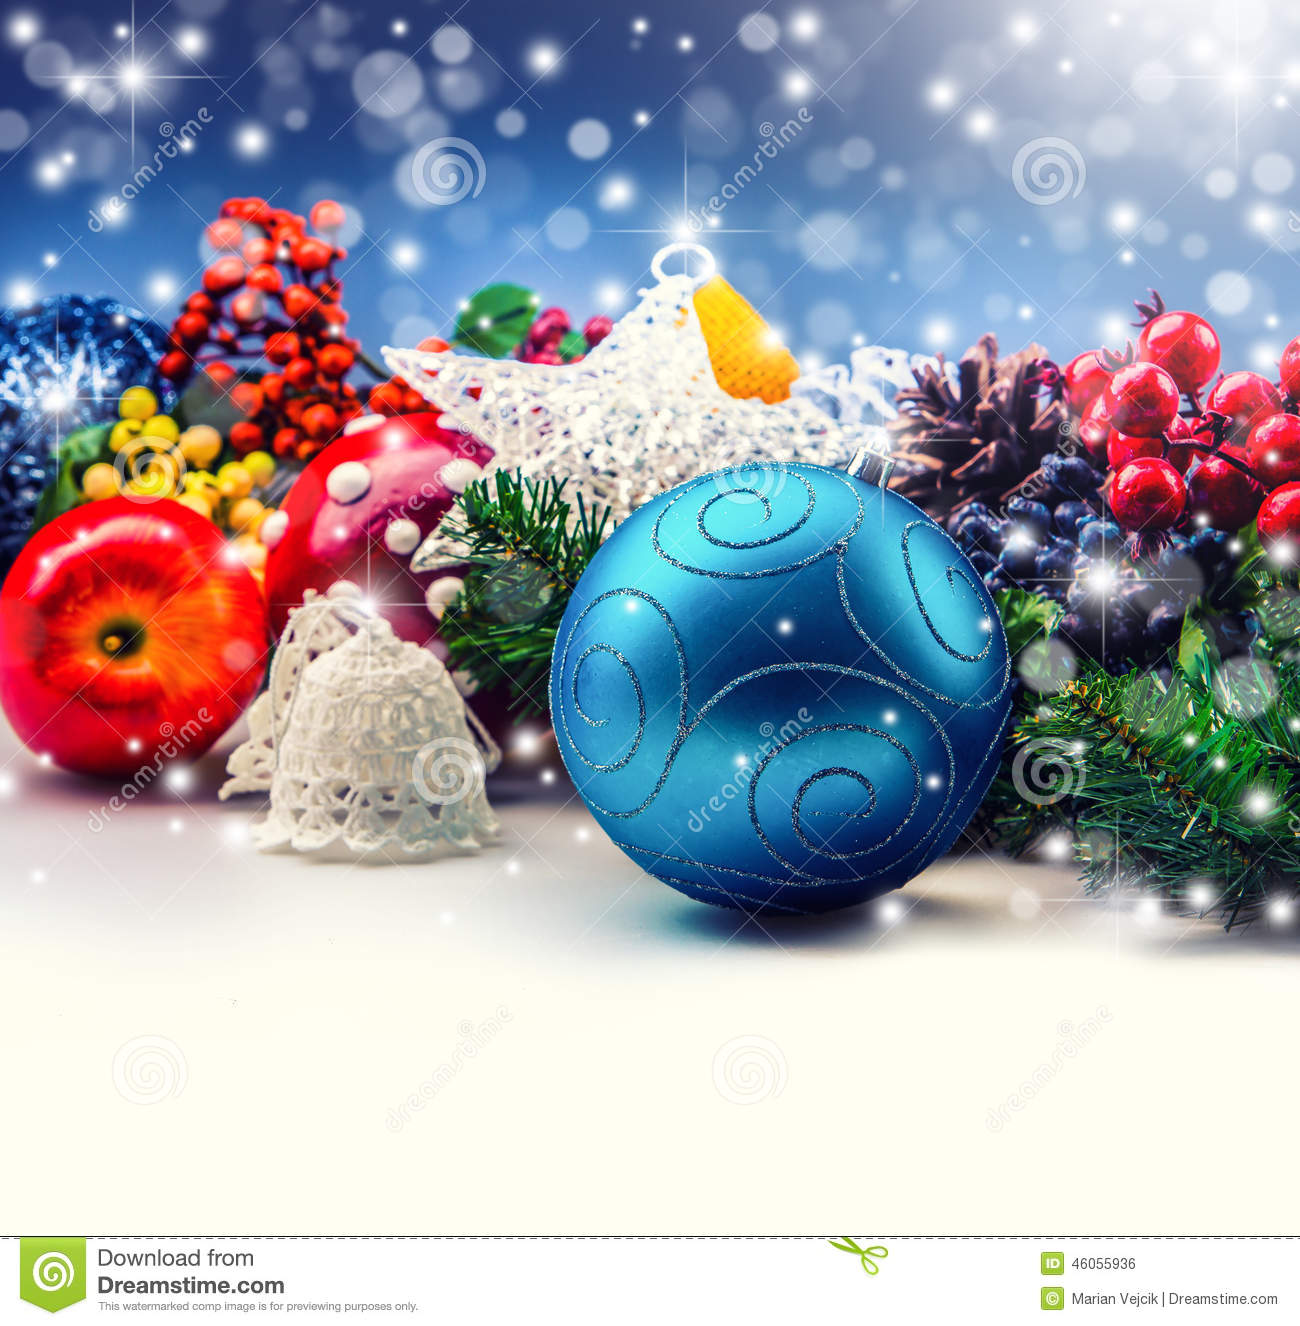 download beautiful christmas decorations border with copy space stock photo image of holiday